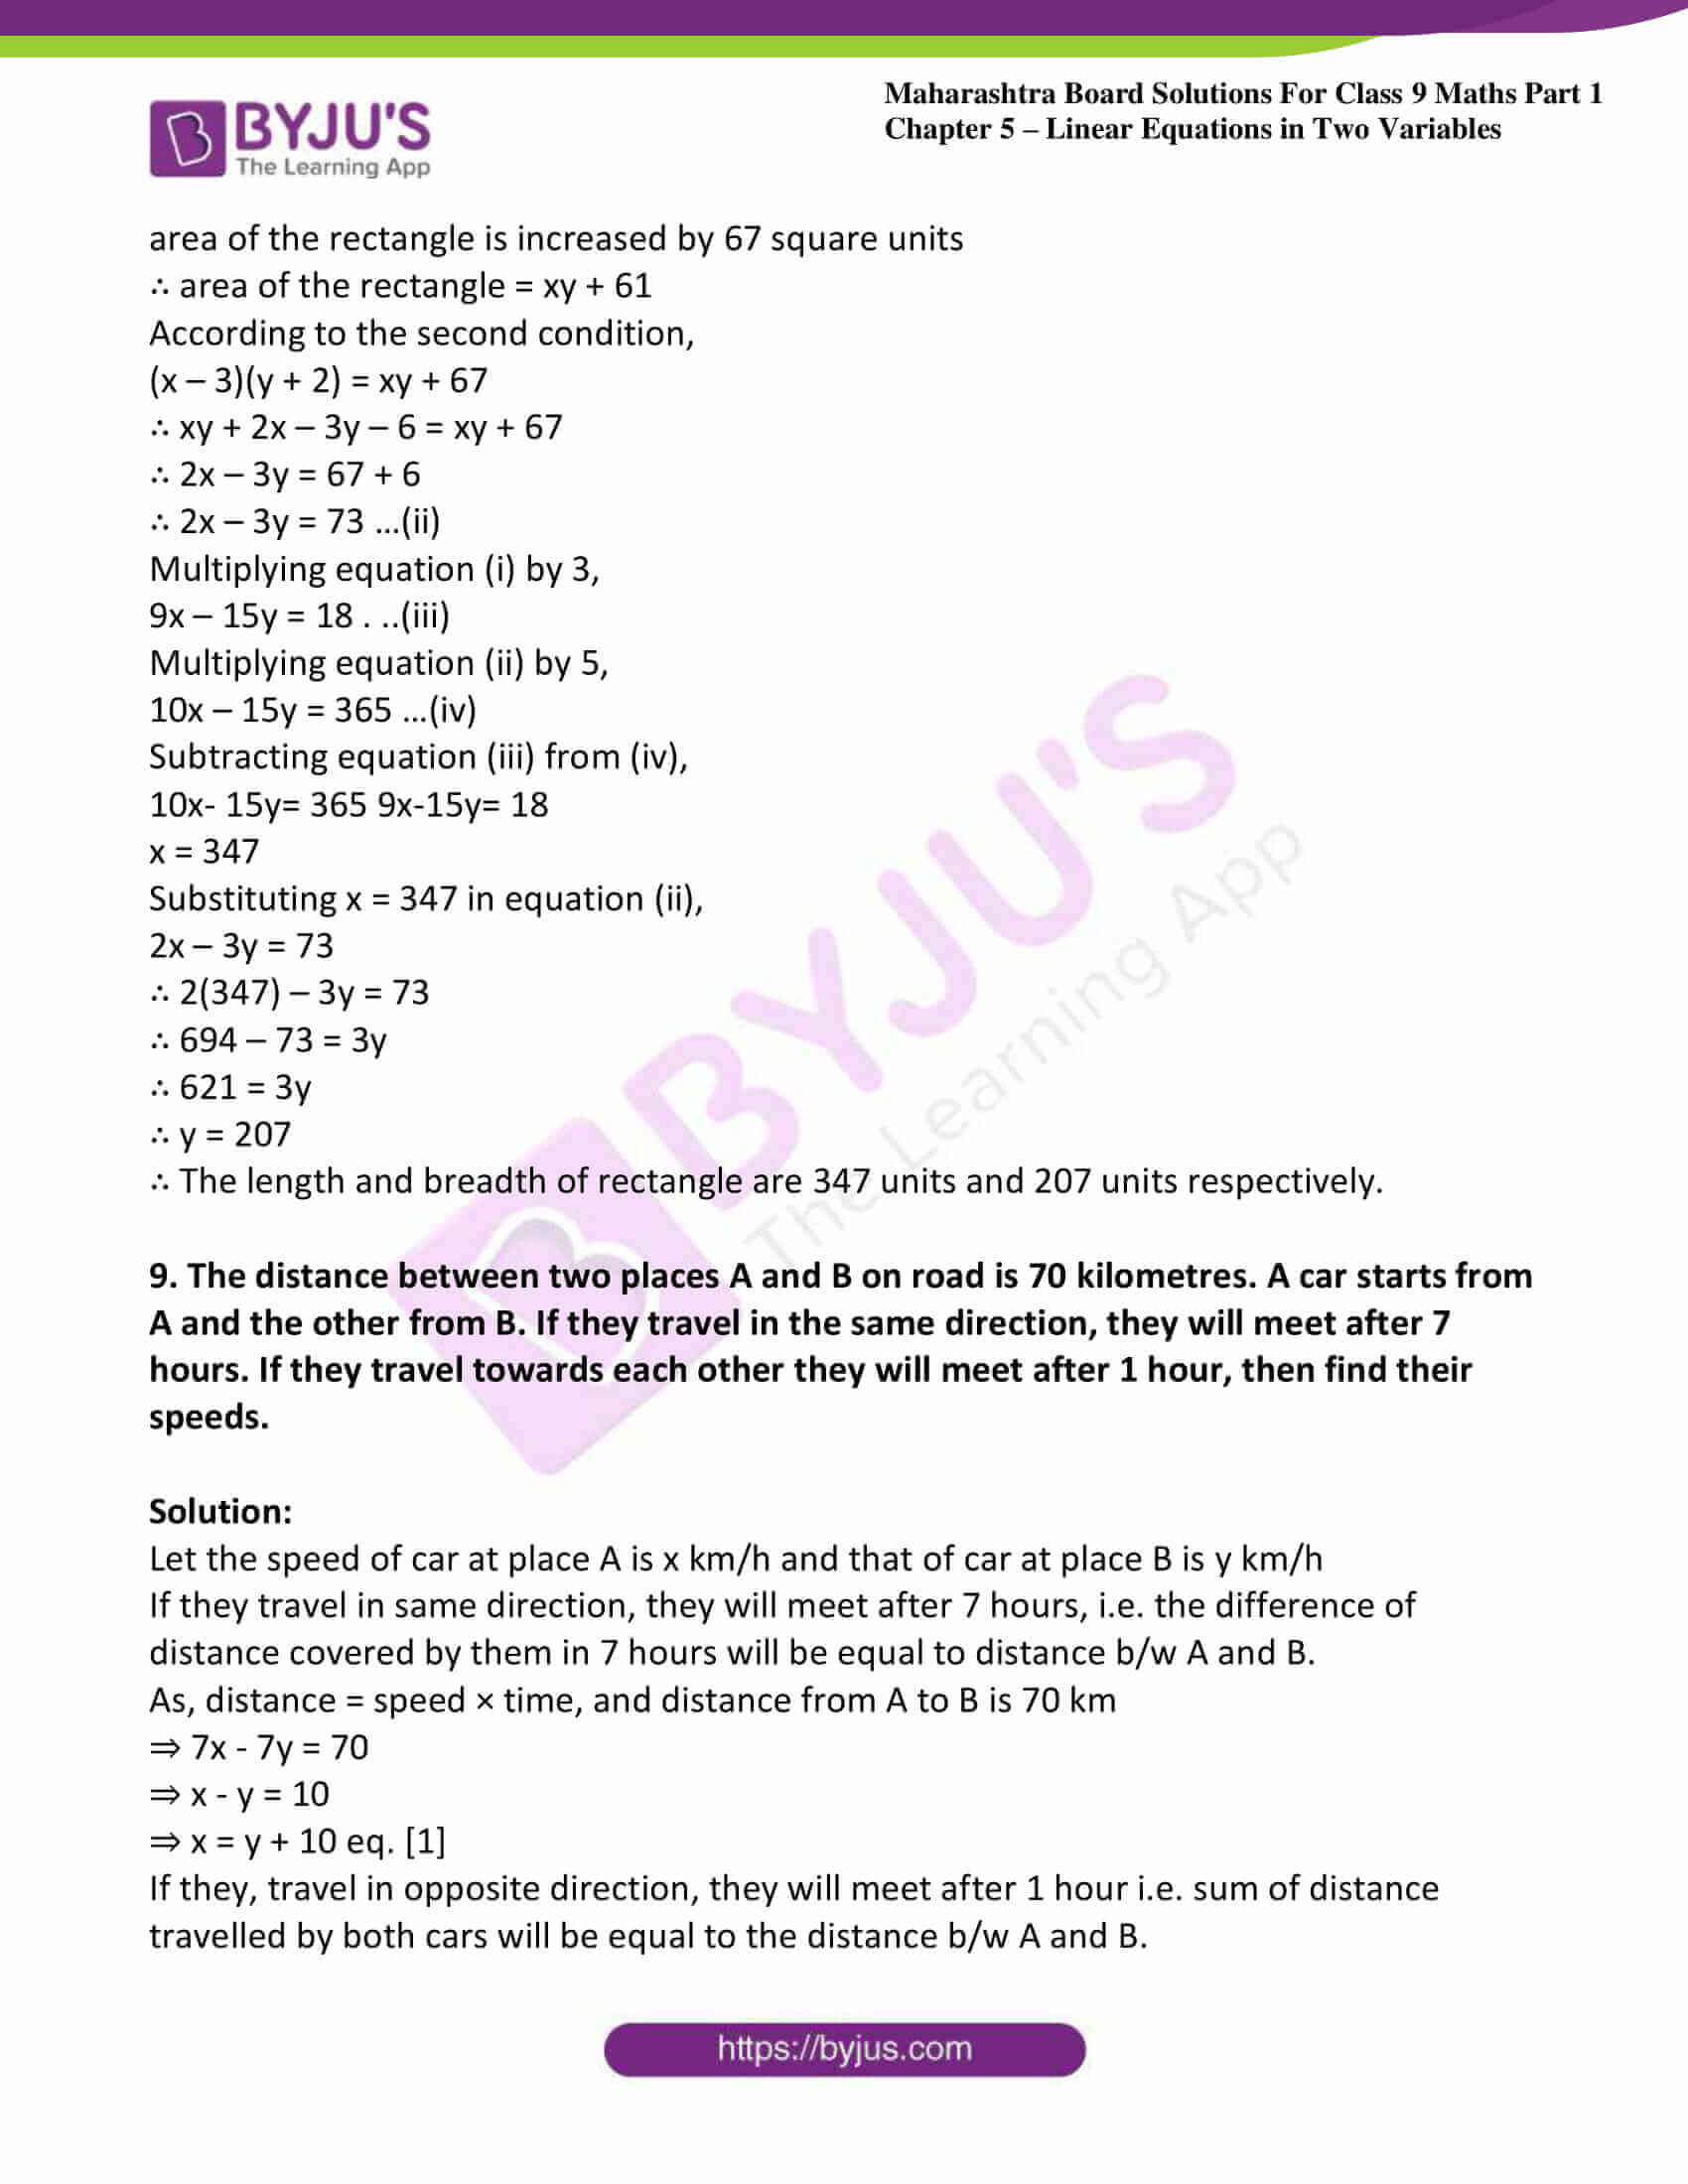 msbshse sol class 9 maths part 1 chapter 5 linear equations in two variables 25